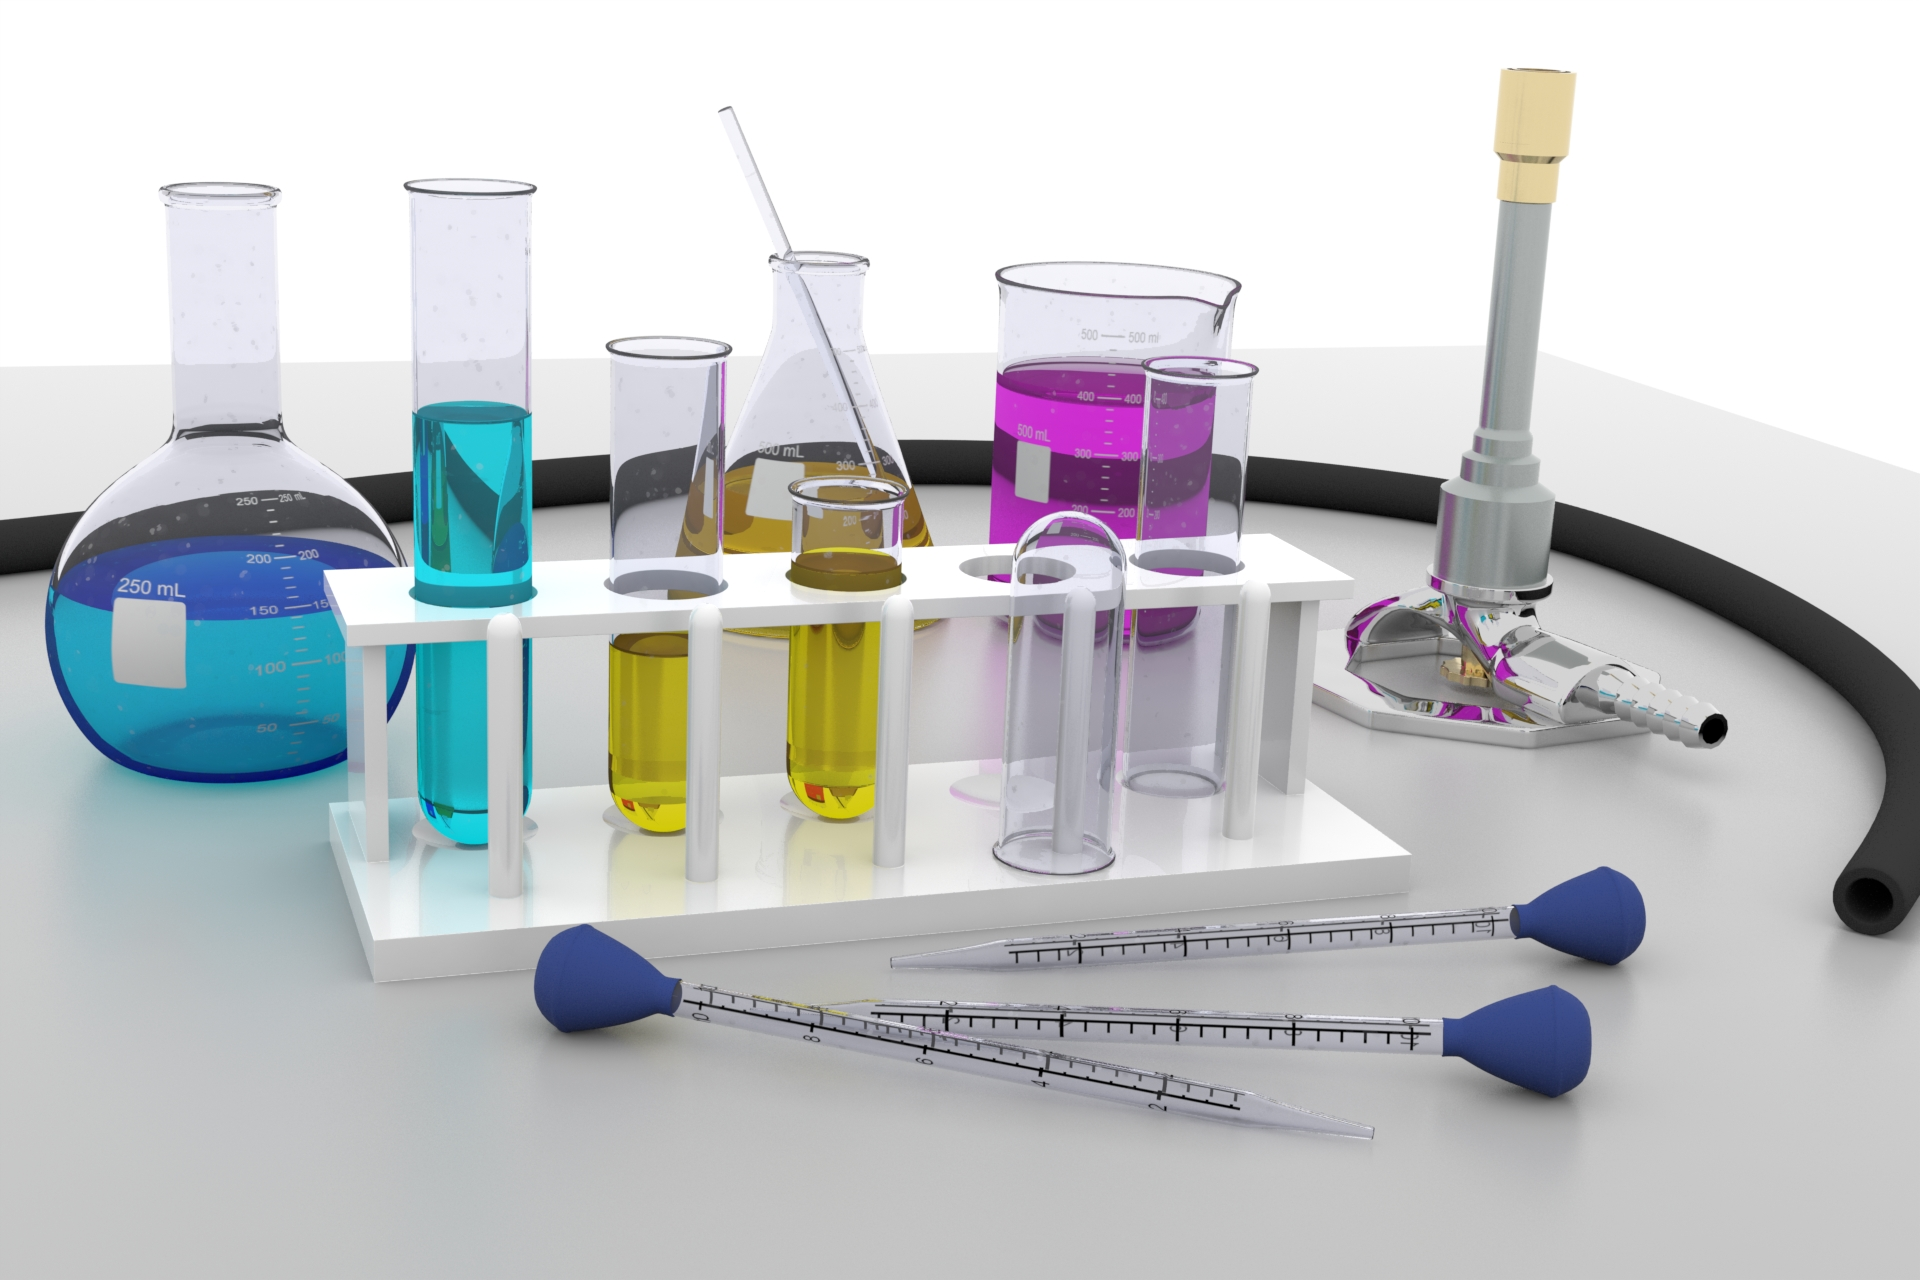 Chemisty-Lab-12.jpg